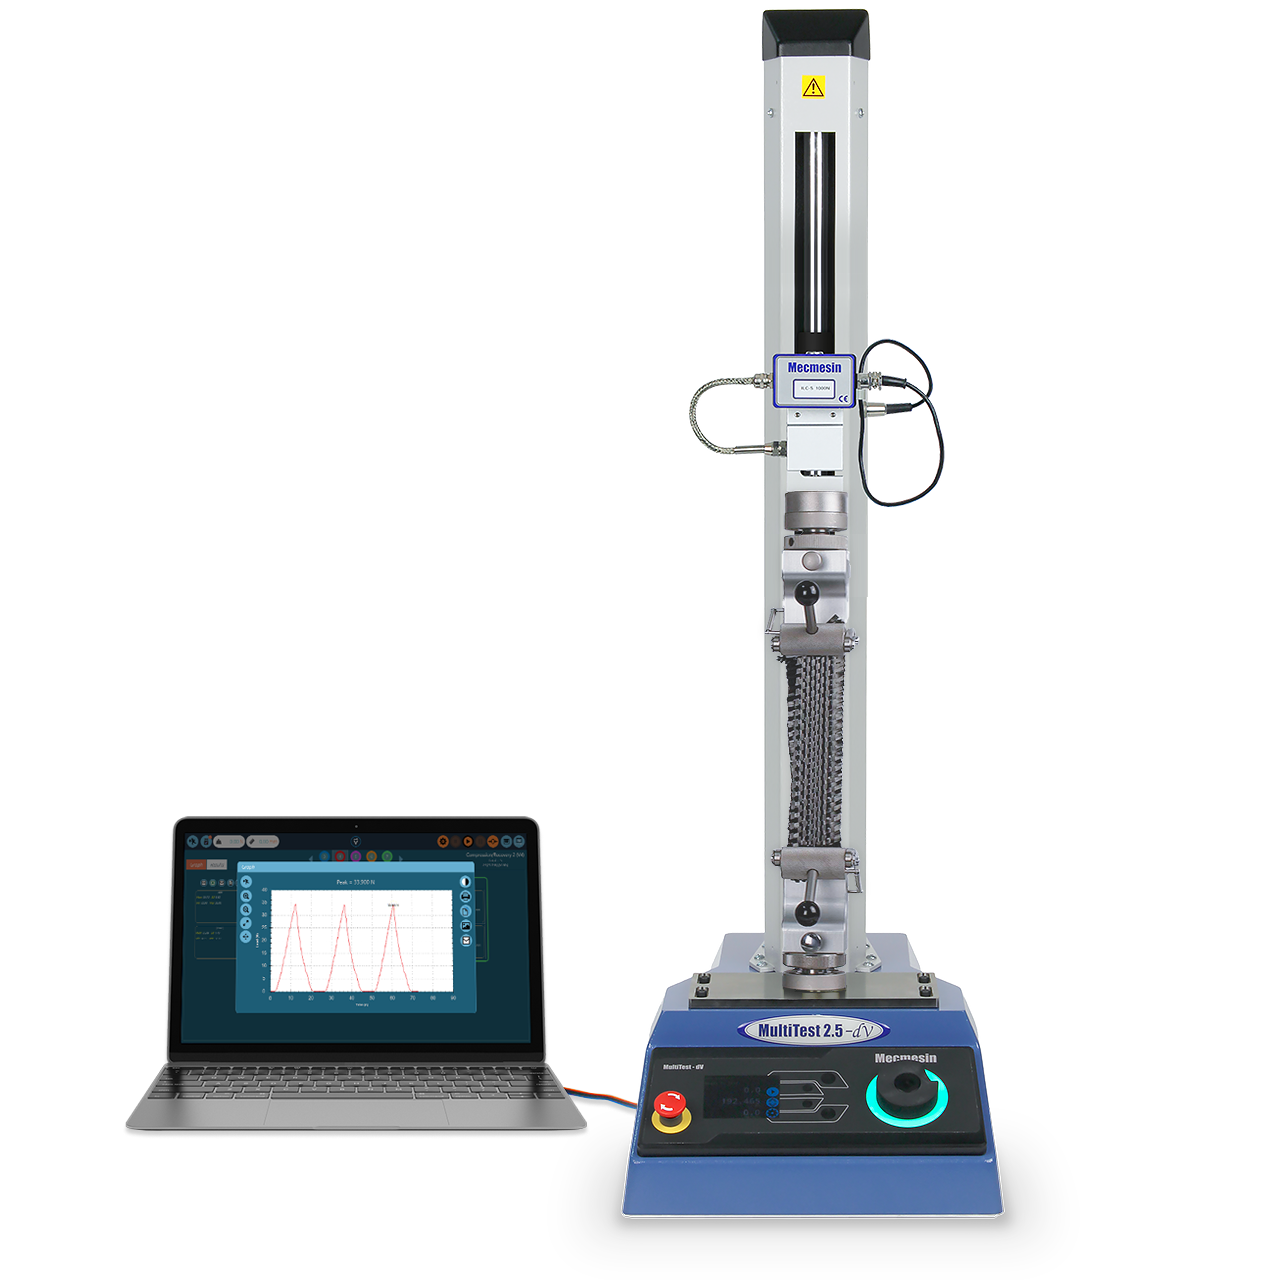 Product image of MultiTest-dV motorised low-force materials tensile tester with sample, pictured with laptop running VectorPro MT tensile testing software